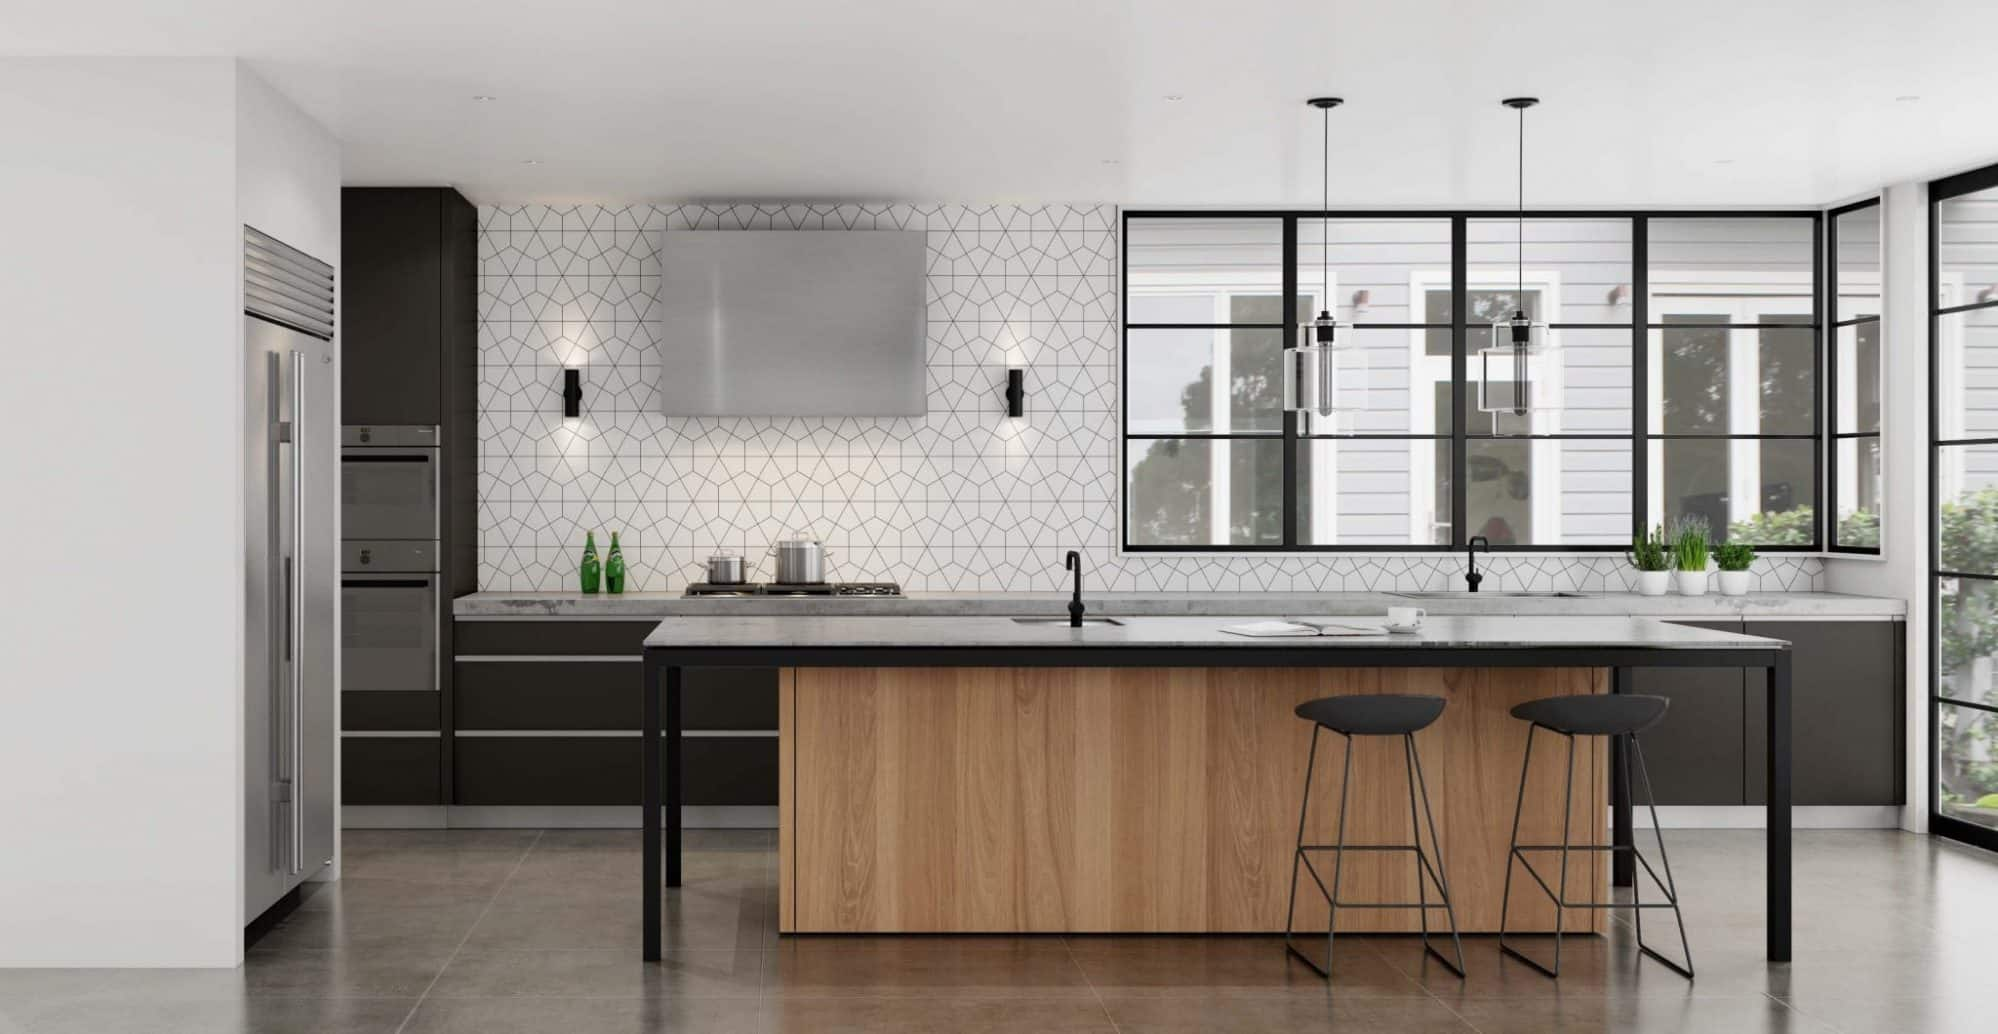 Why Should You Consider Hiring Professional Kitchen Designers